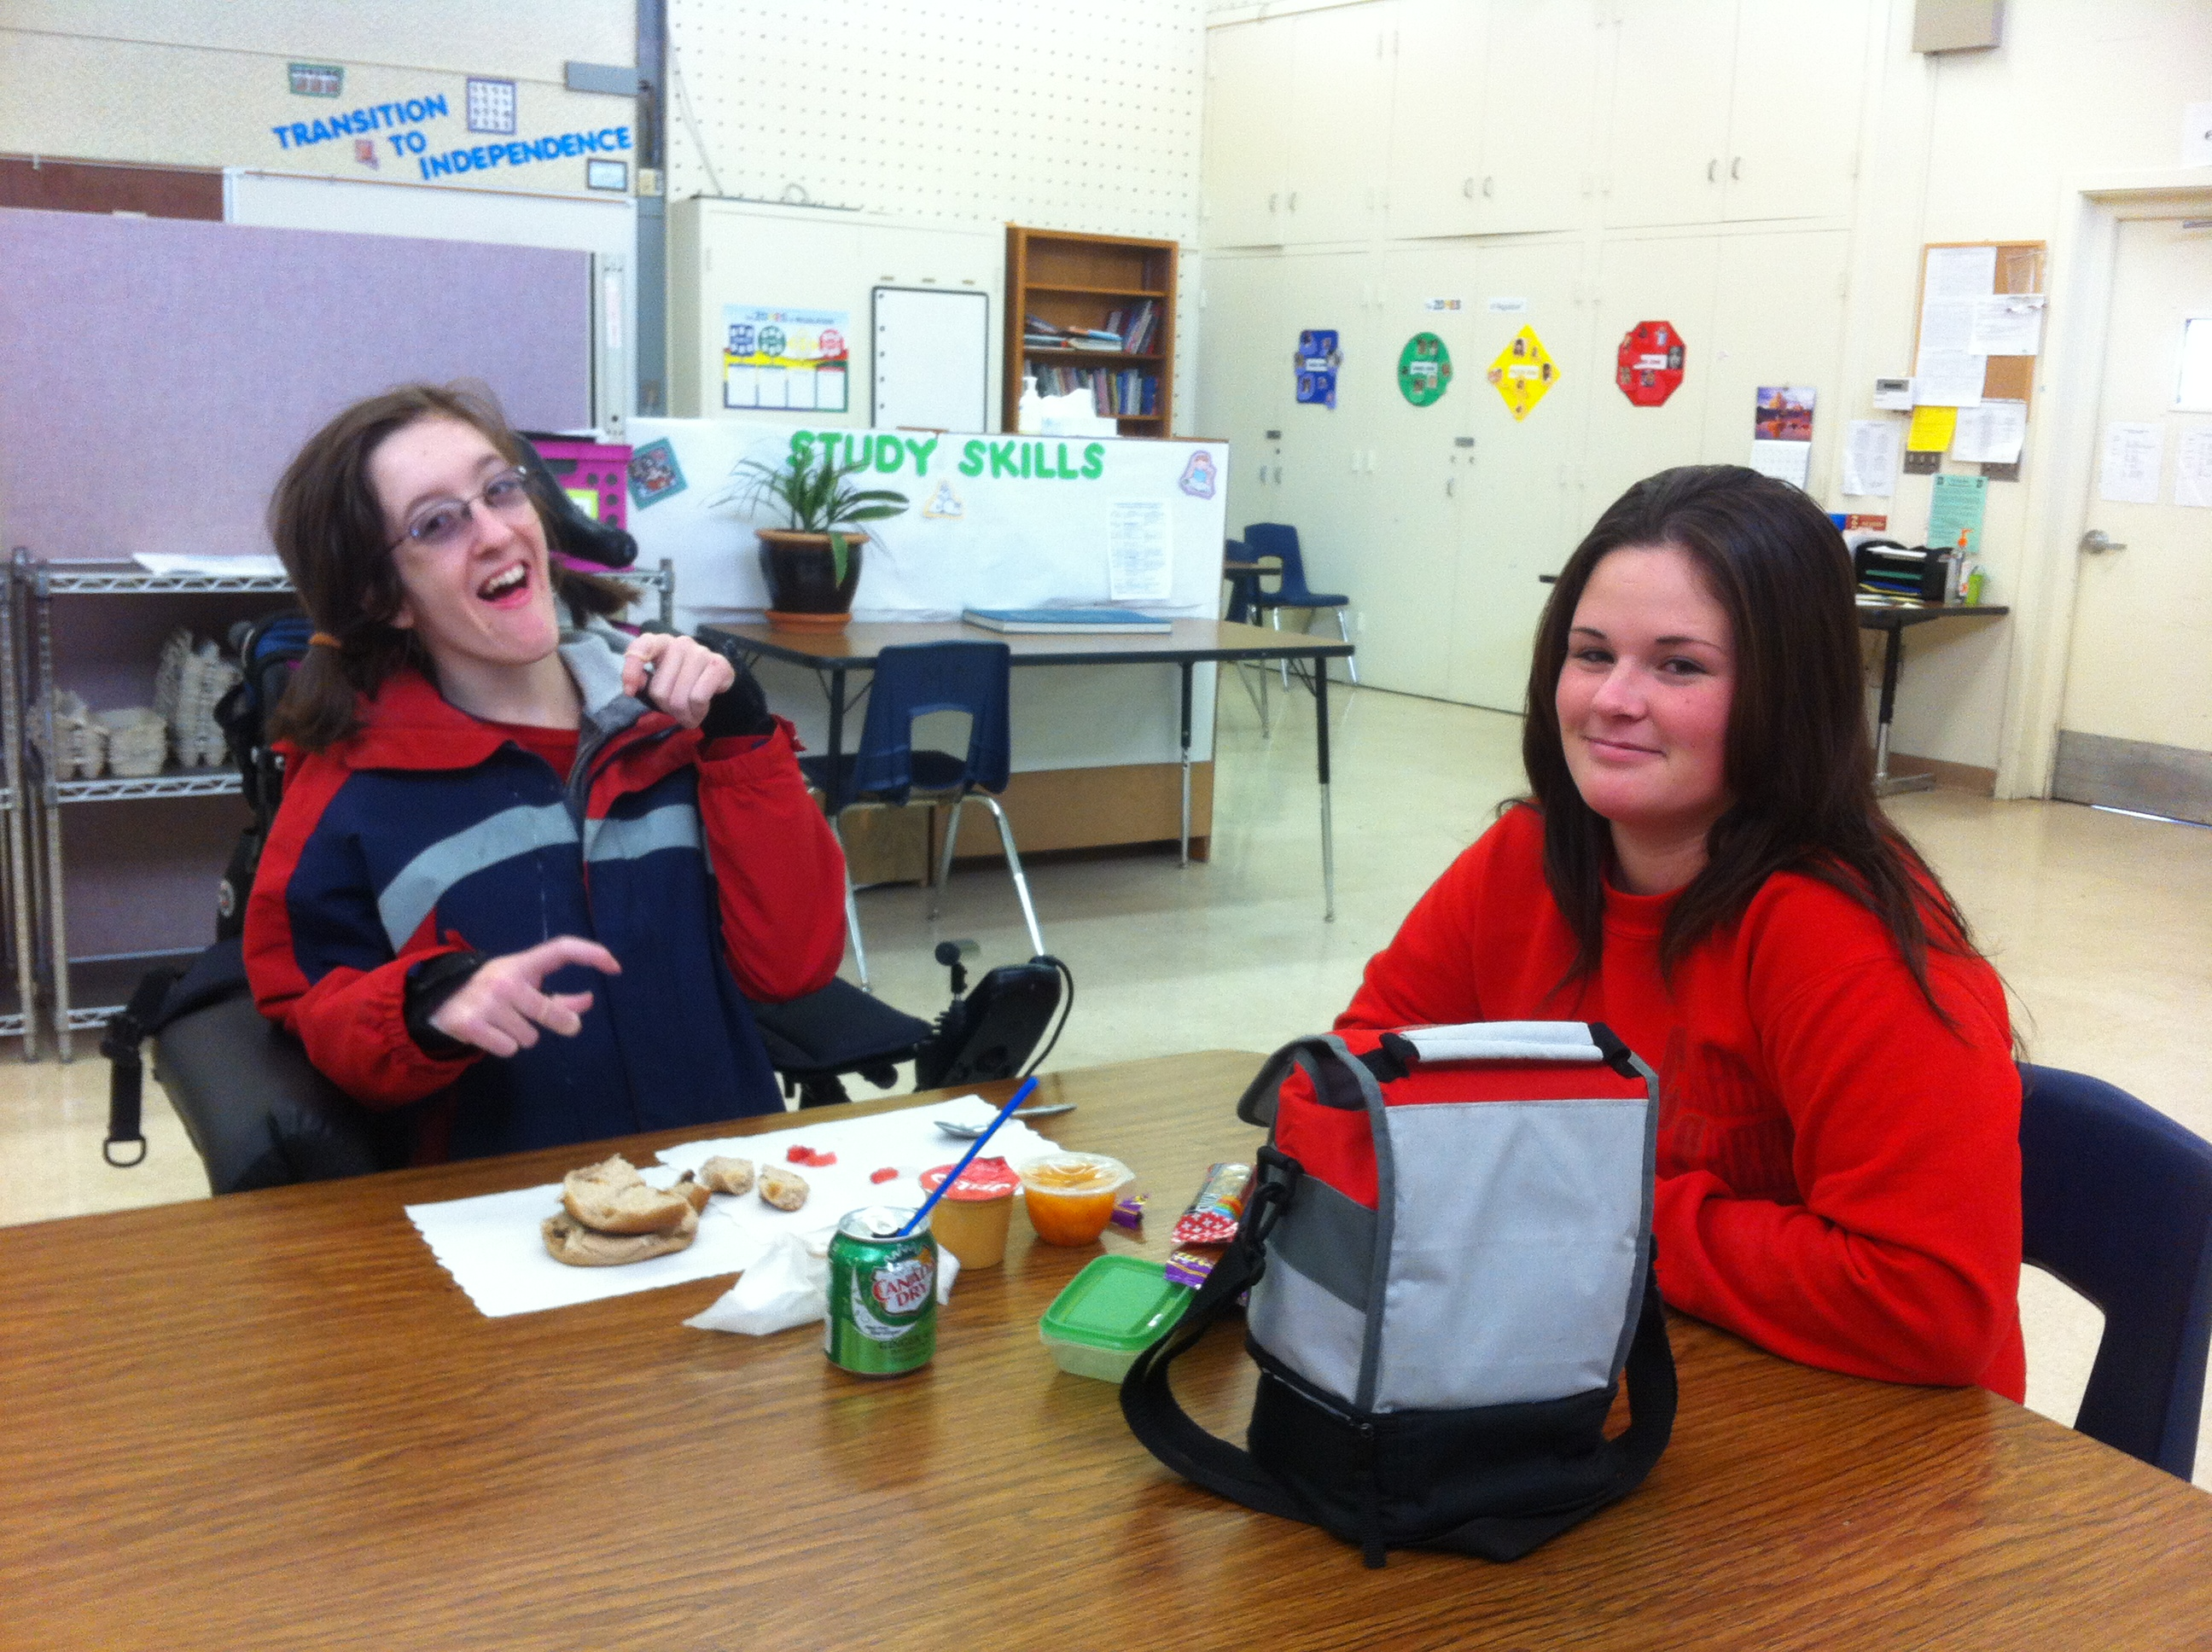 Junior Jessica Roeckl-Navazio eats lunch in classroom M1 with her paraeducator. Her paraeducator, Nichole Spiva, has been working at DHS for three months.